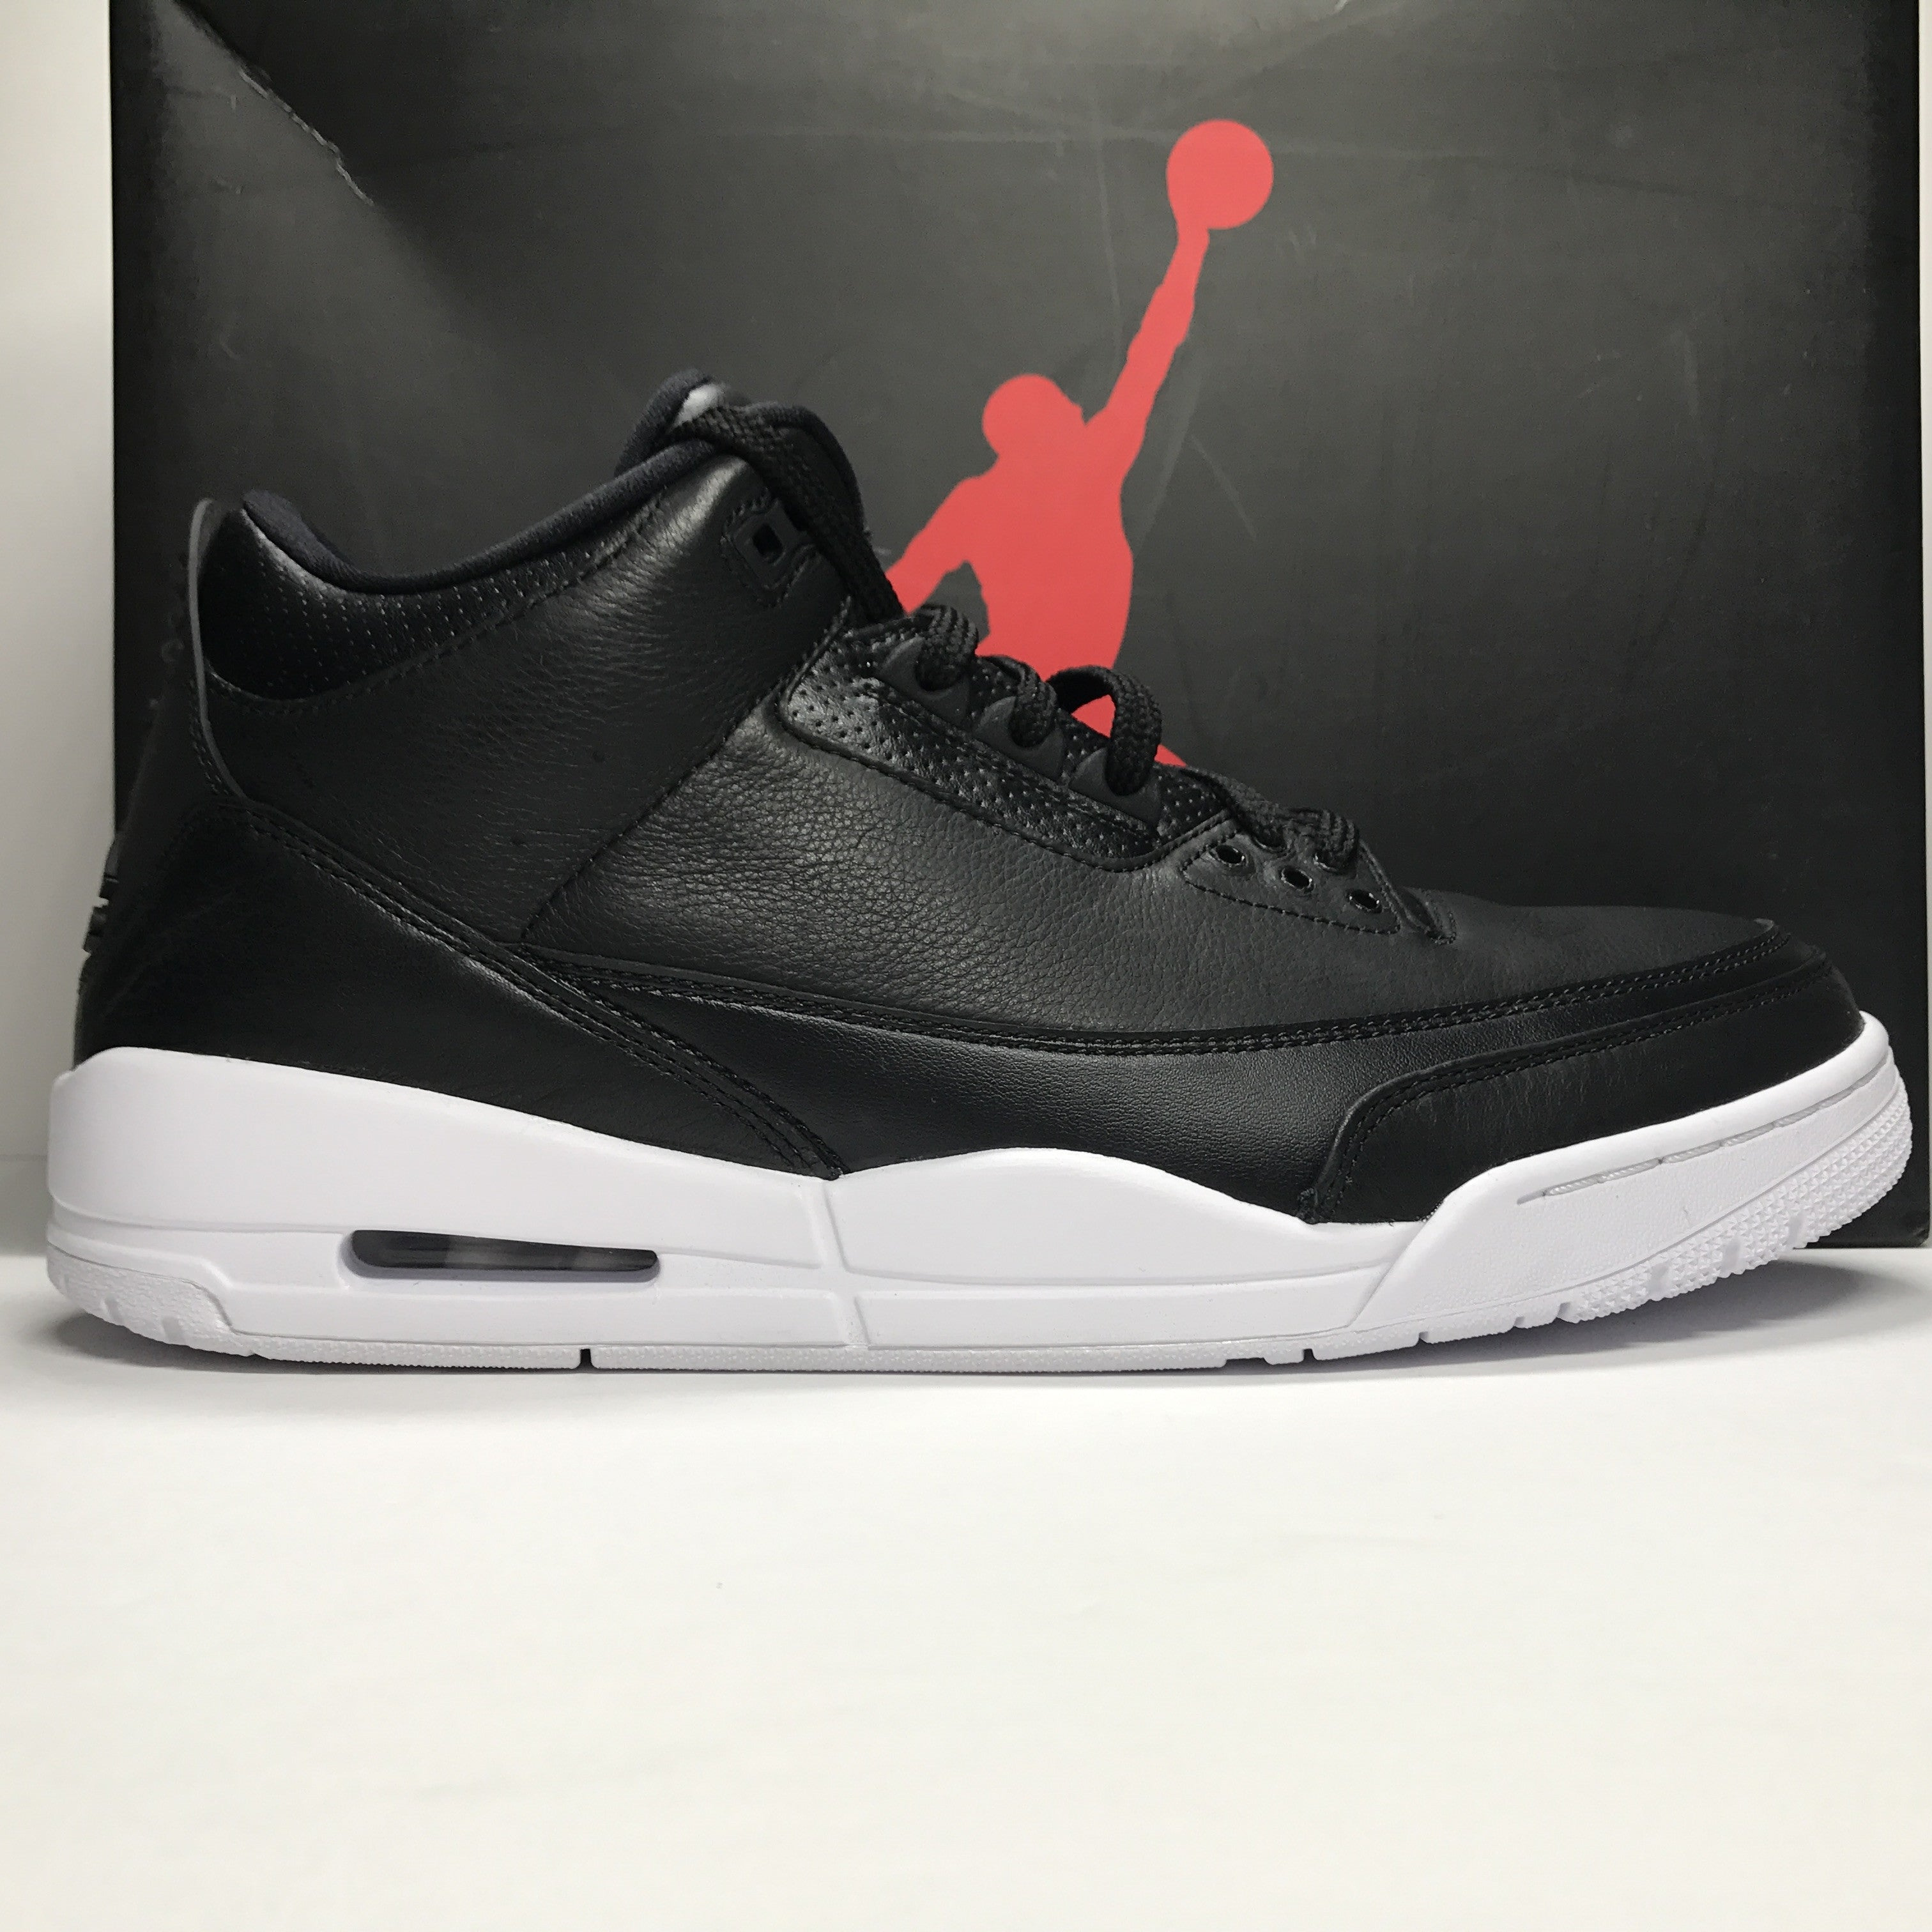 brand new 94728 944bc DS Nike Air Jordan 3 III Retro Cyber Monday Size 8.5 Size 11 Size 12 –  SneakerBinge